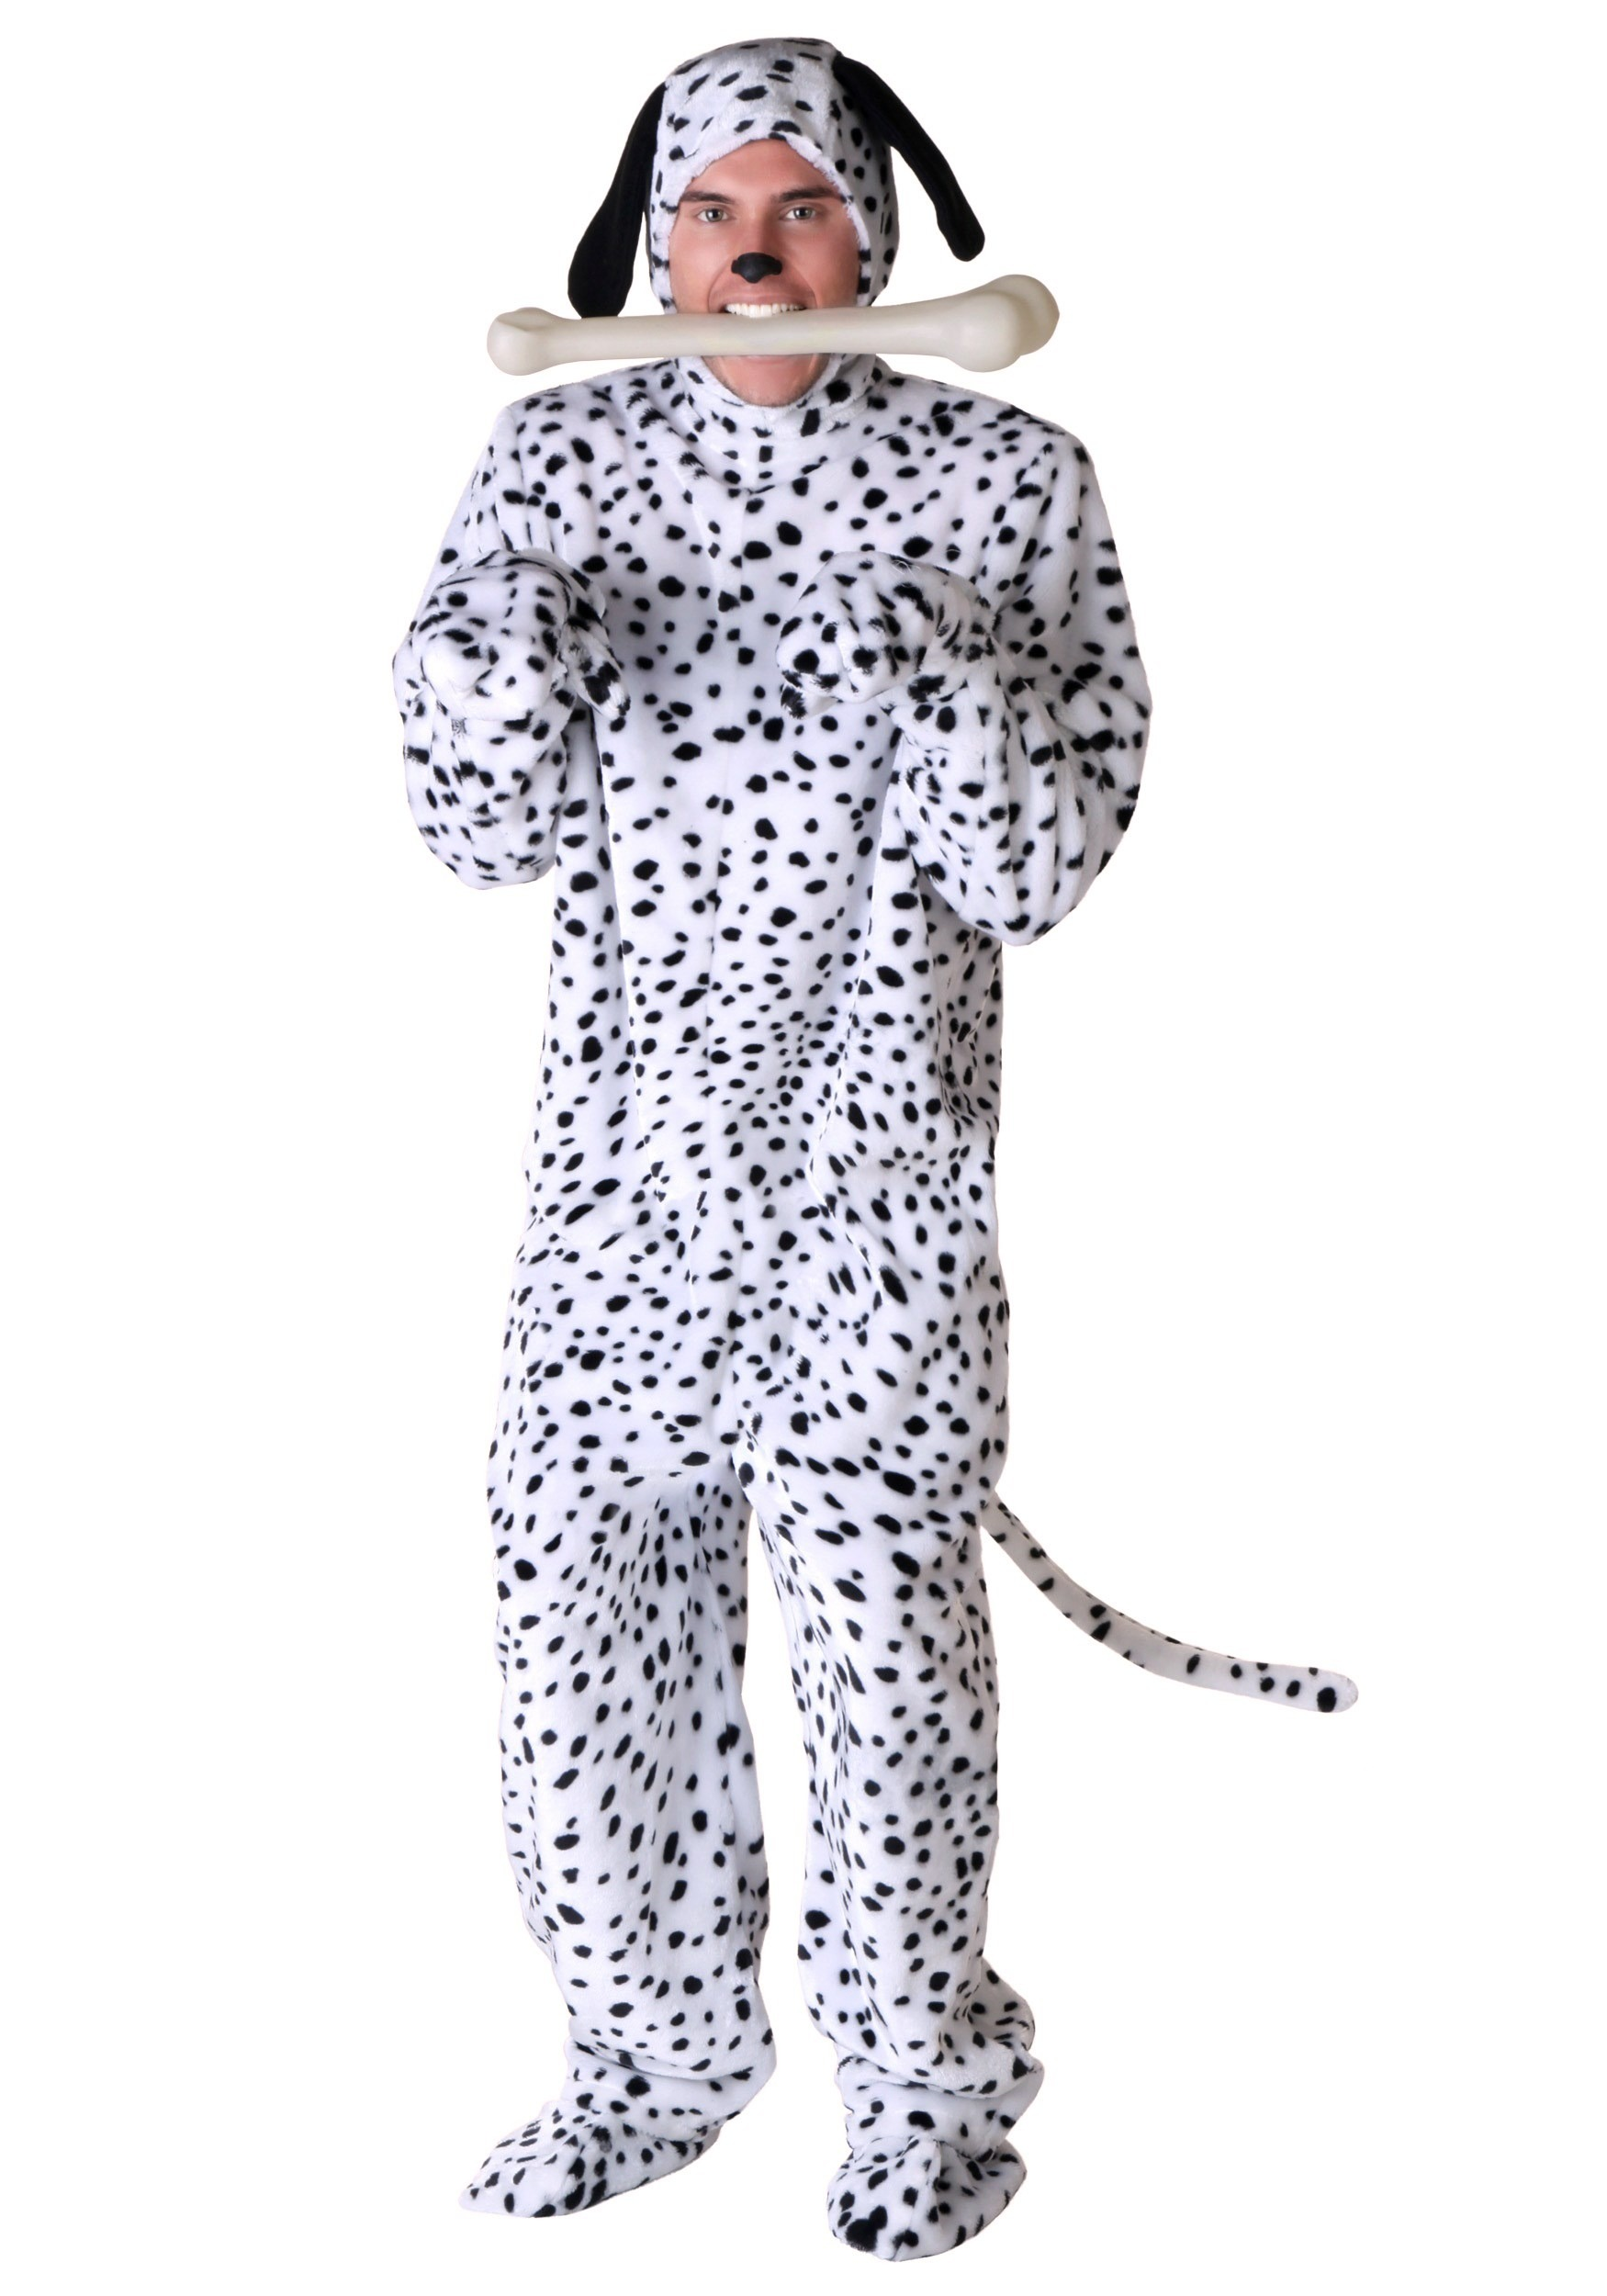 sc 1 st  Halloween Costumes : dalmatian costume for child  - Germanpascual.Com